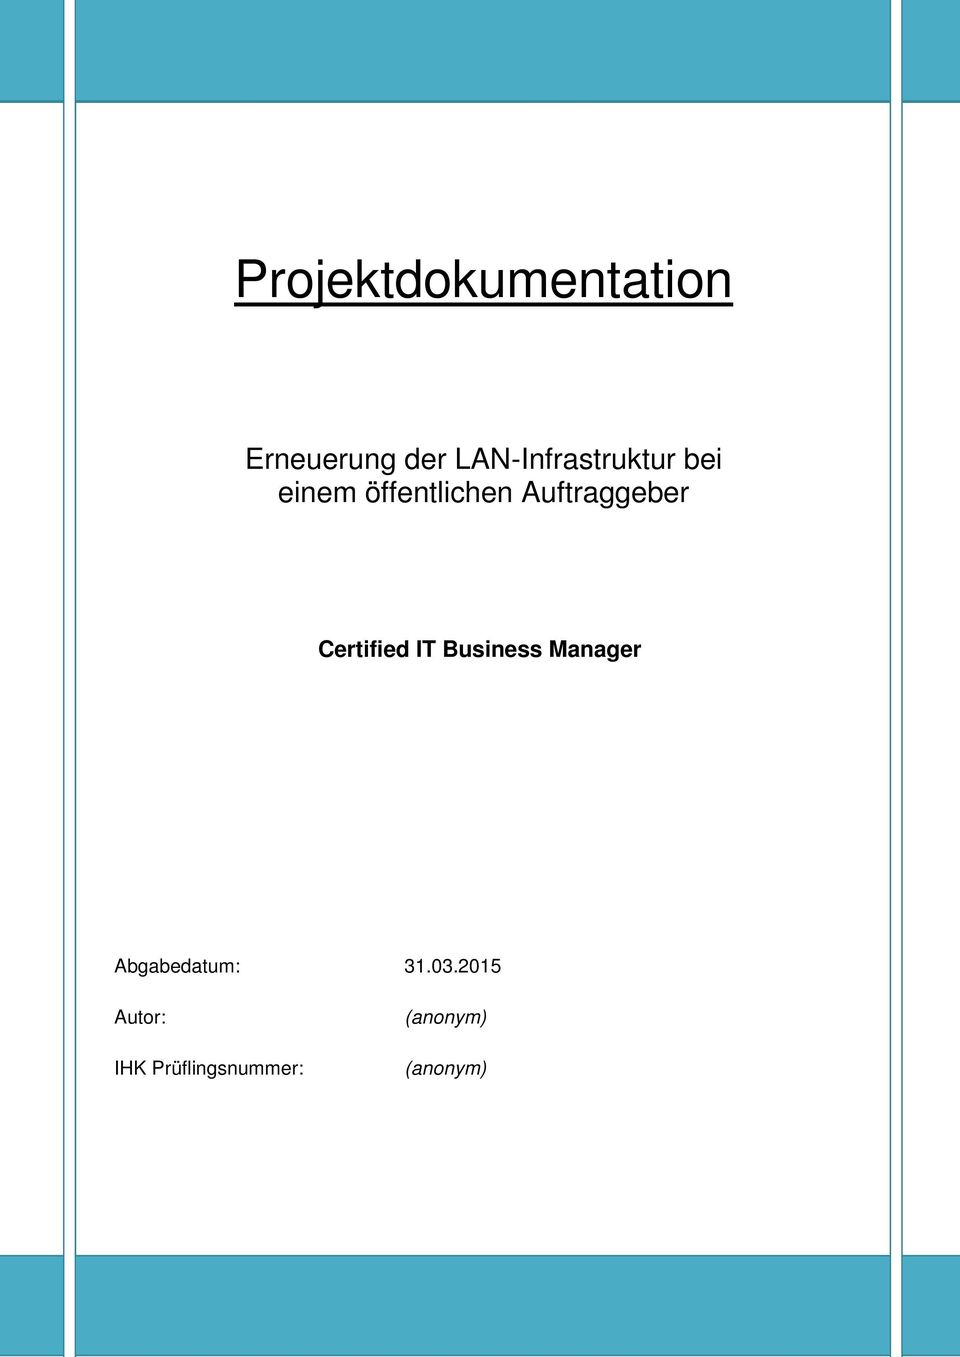 Business Manager Abgabedatum: 31.03.